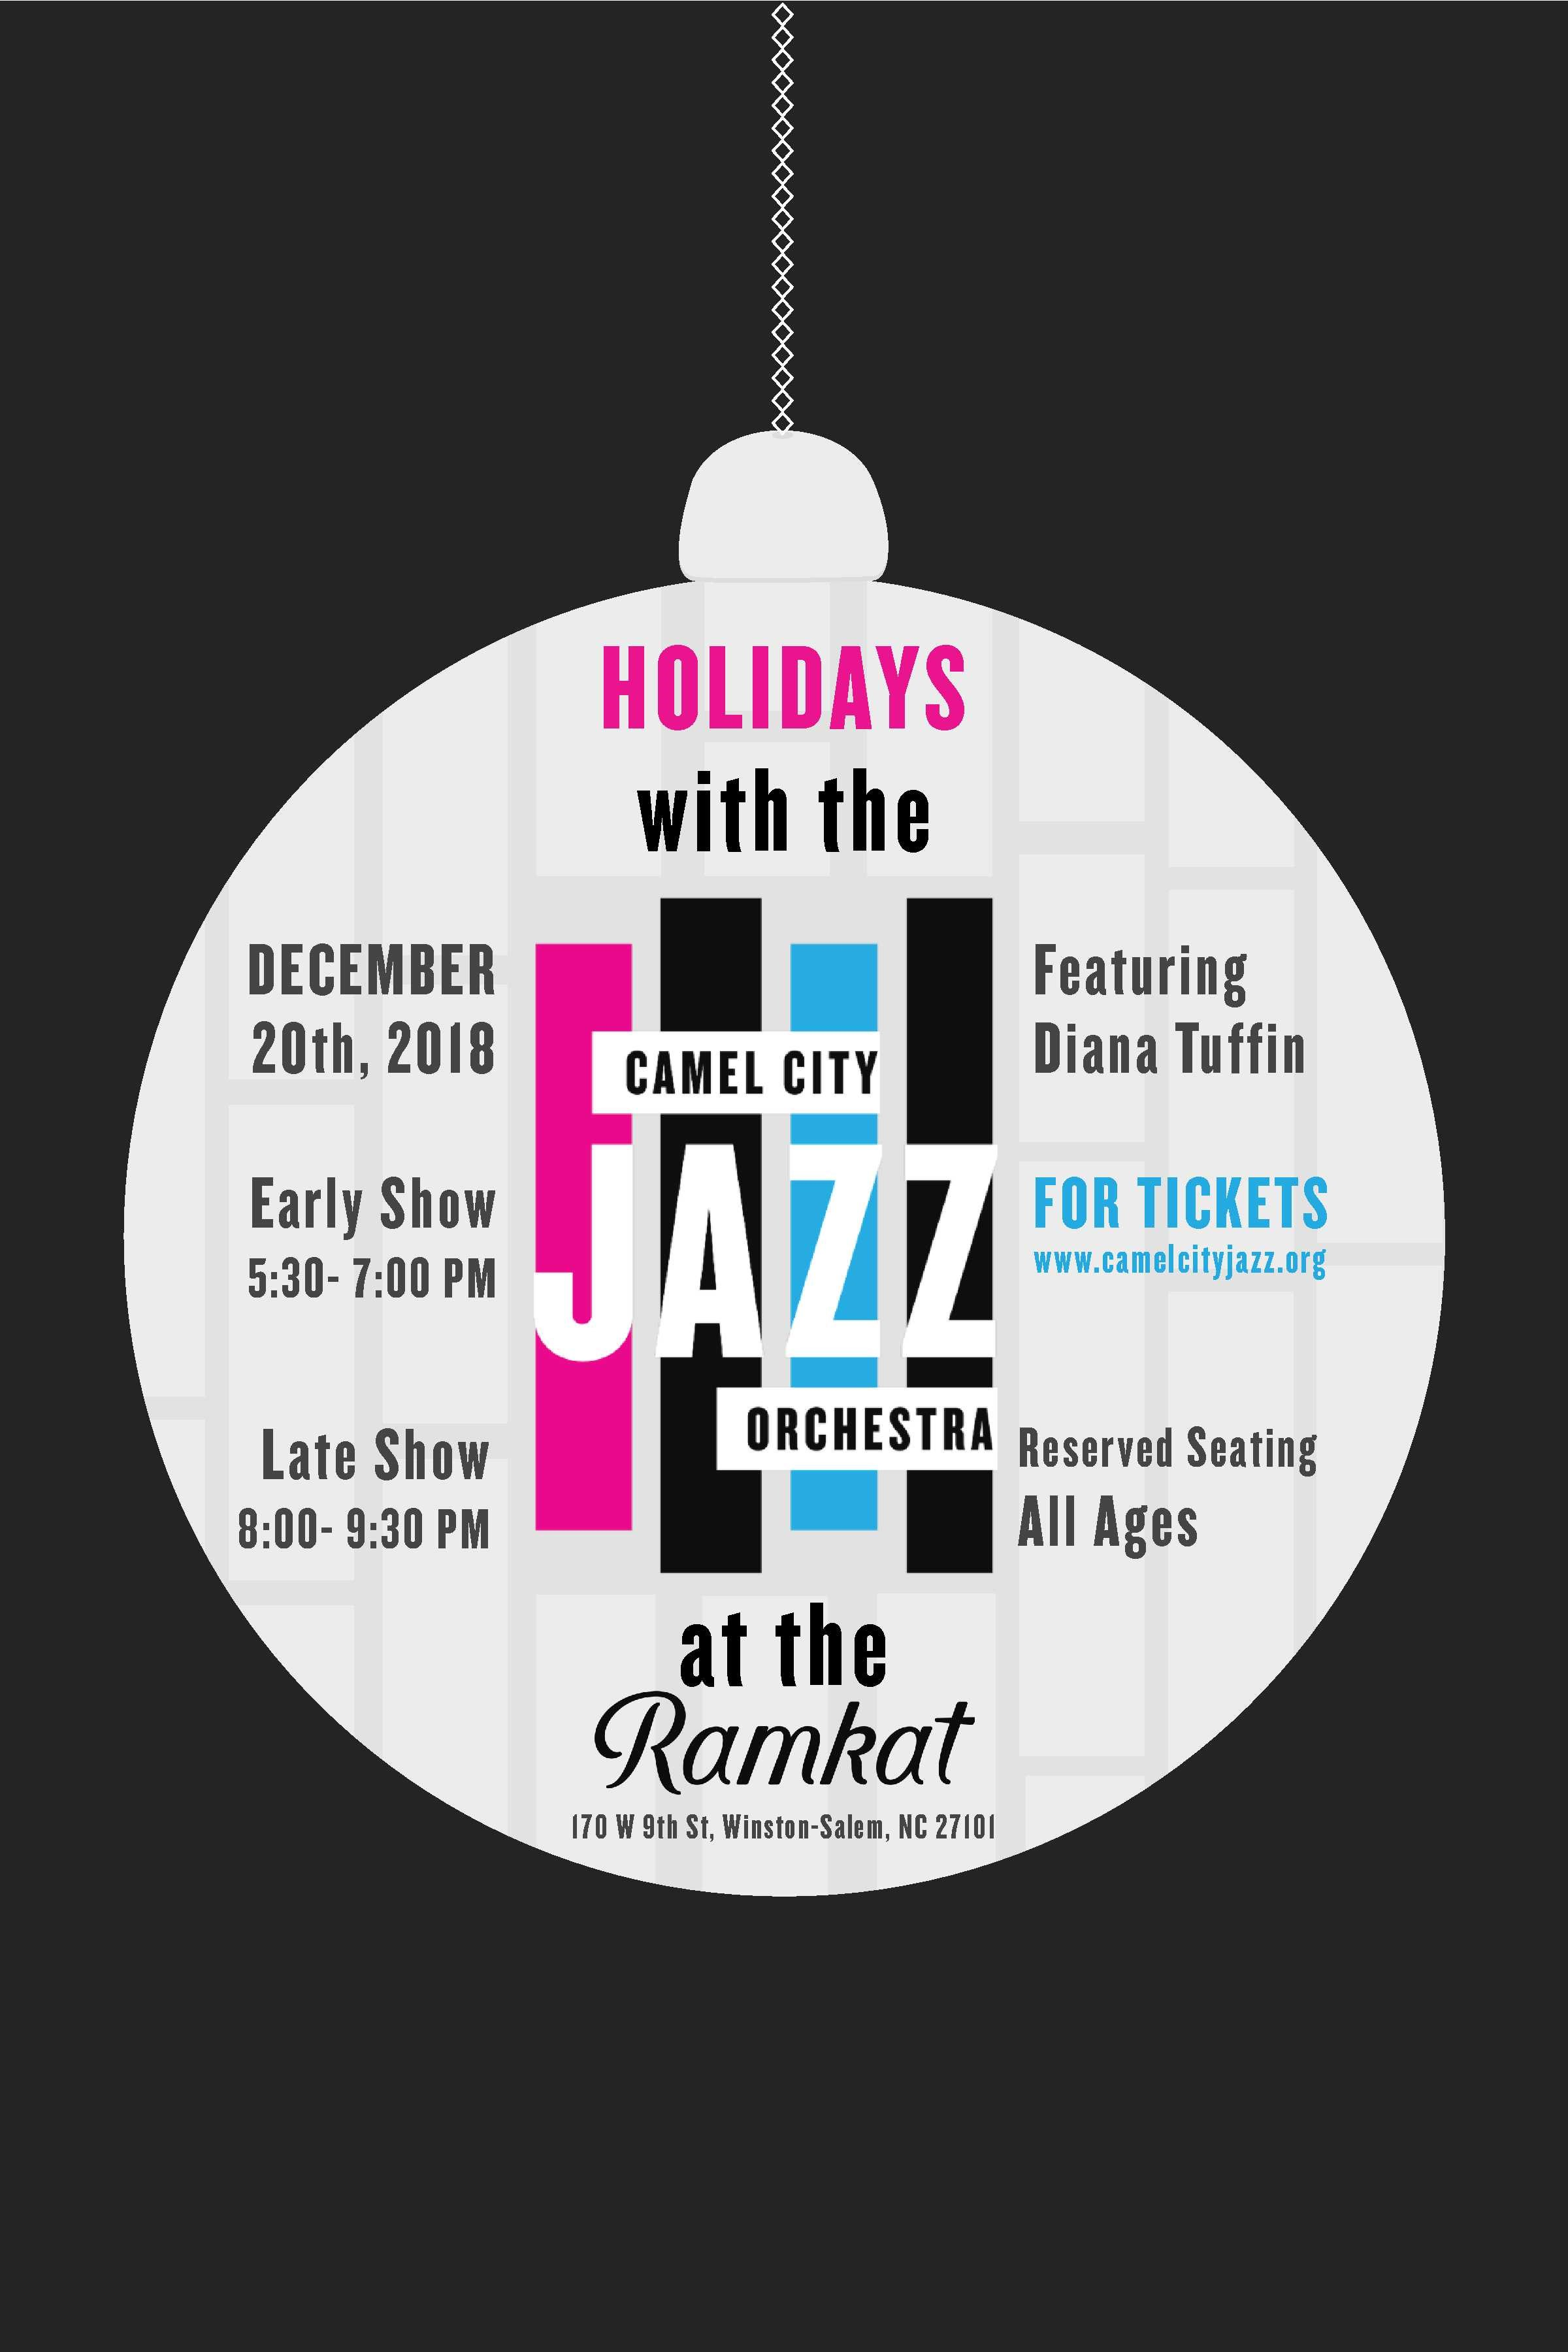 Holidays with the Camel City Jazz Orchestra